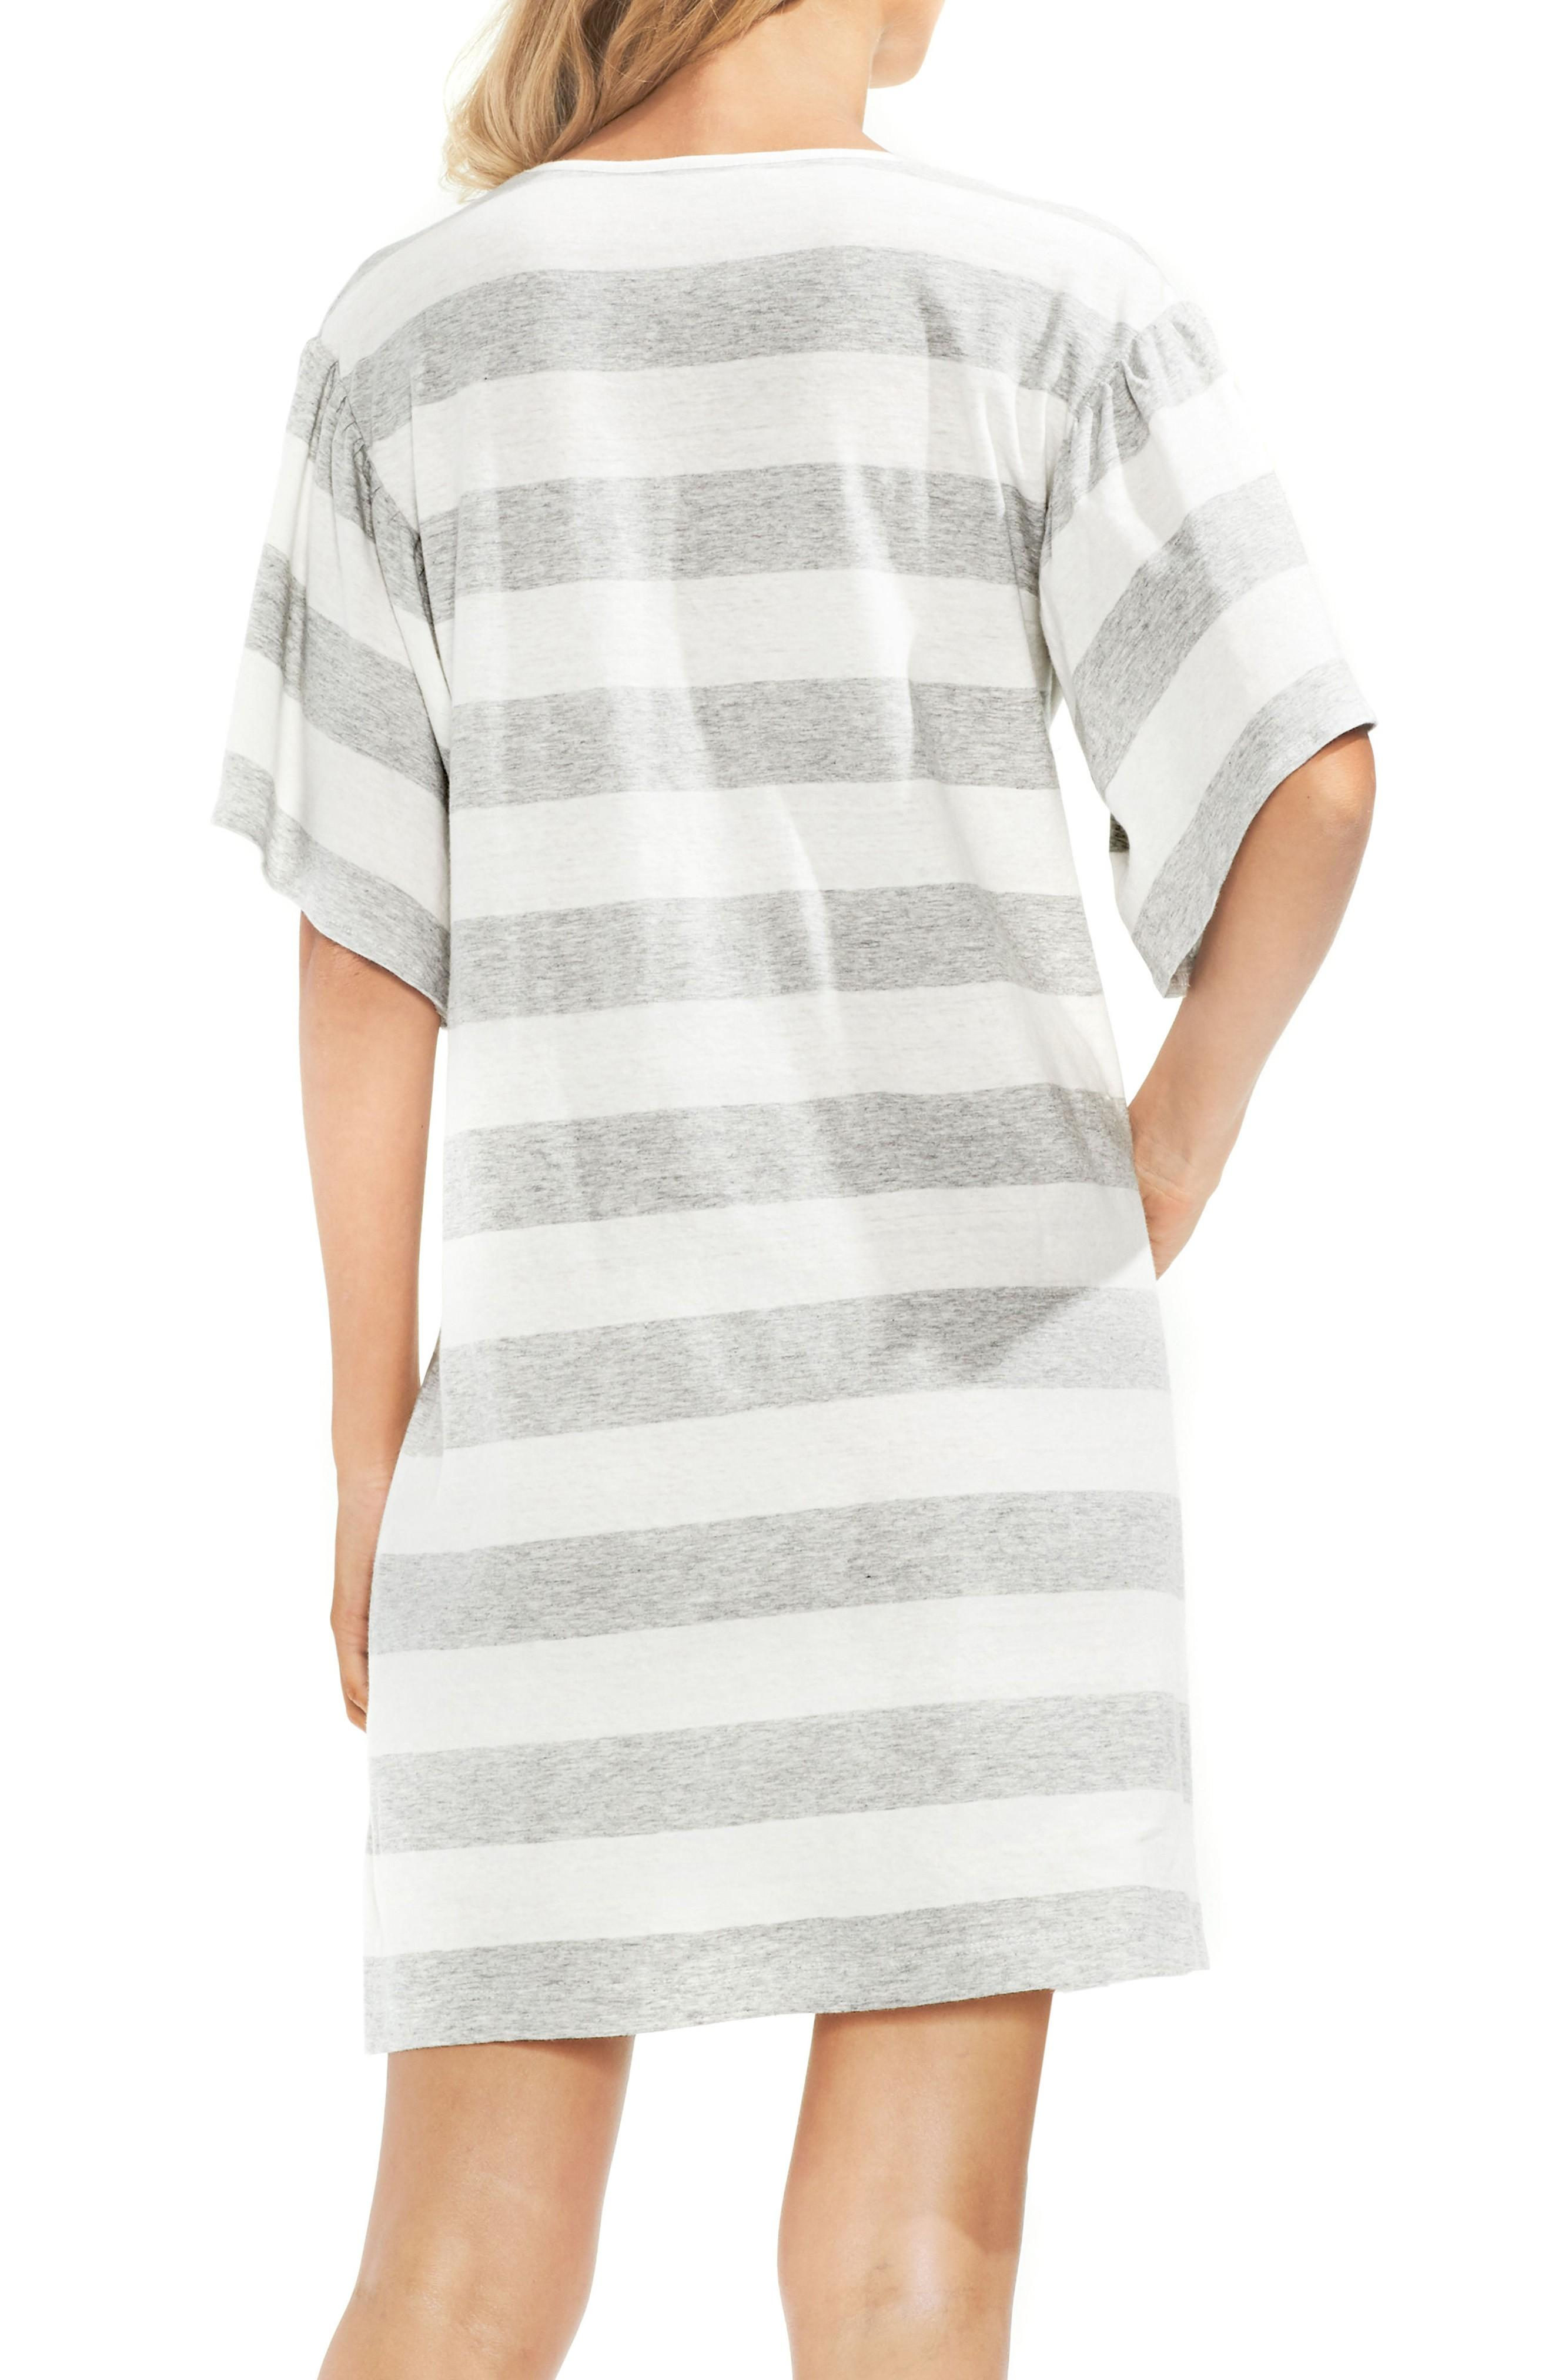 a5dc0d0461b Vince Camuto Ruffle Sleeve Stripe T-Shirt Dress In Grey Heather ...